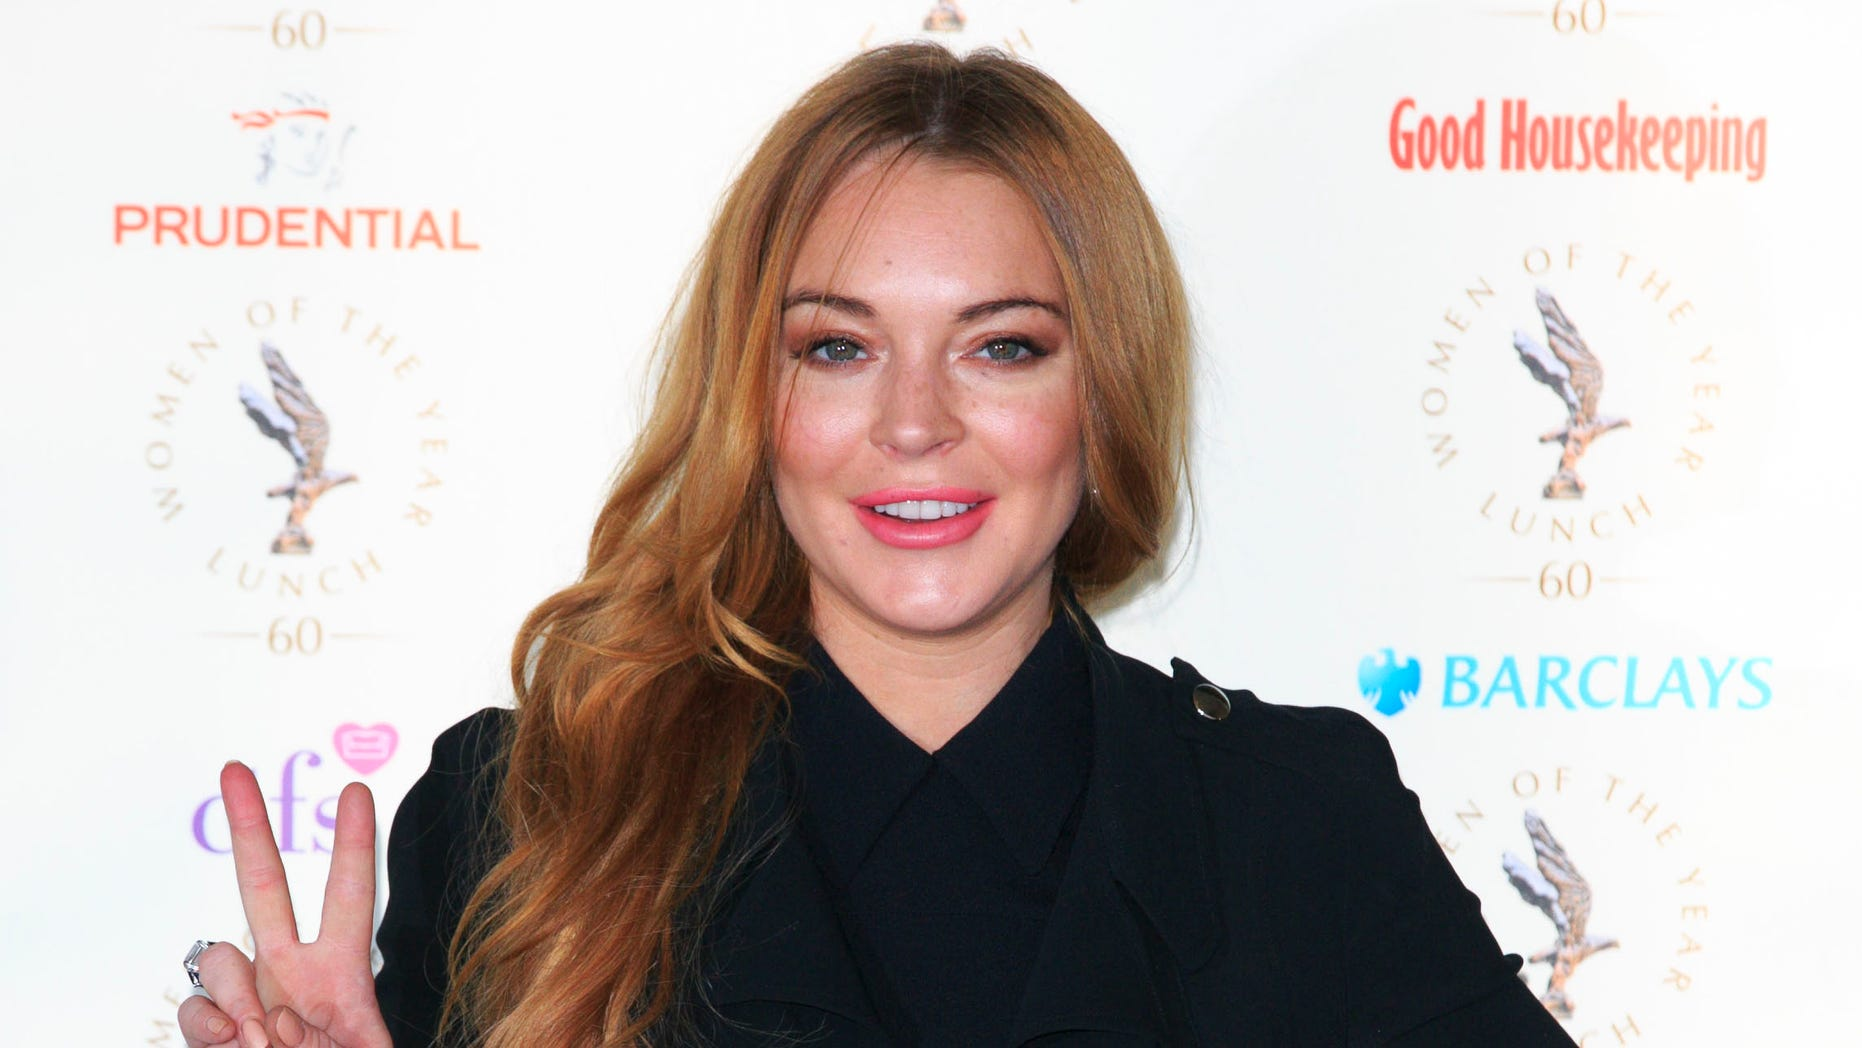 Lindsay Lohan attends the Women Of The Year lunch on October 13, 2014 in London, England.